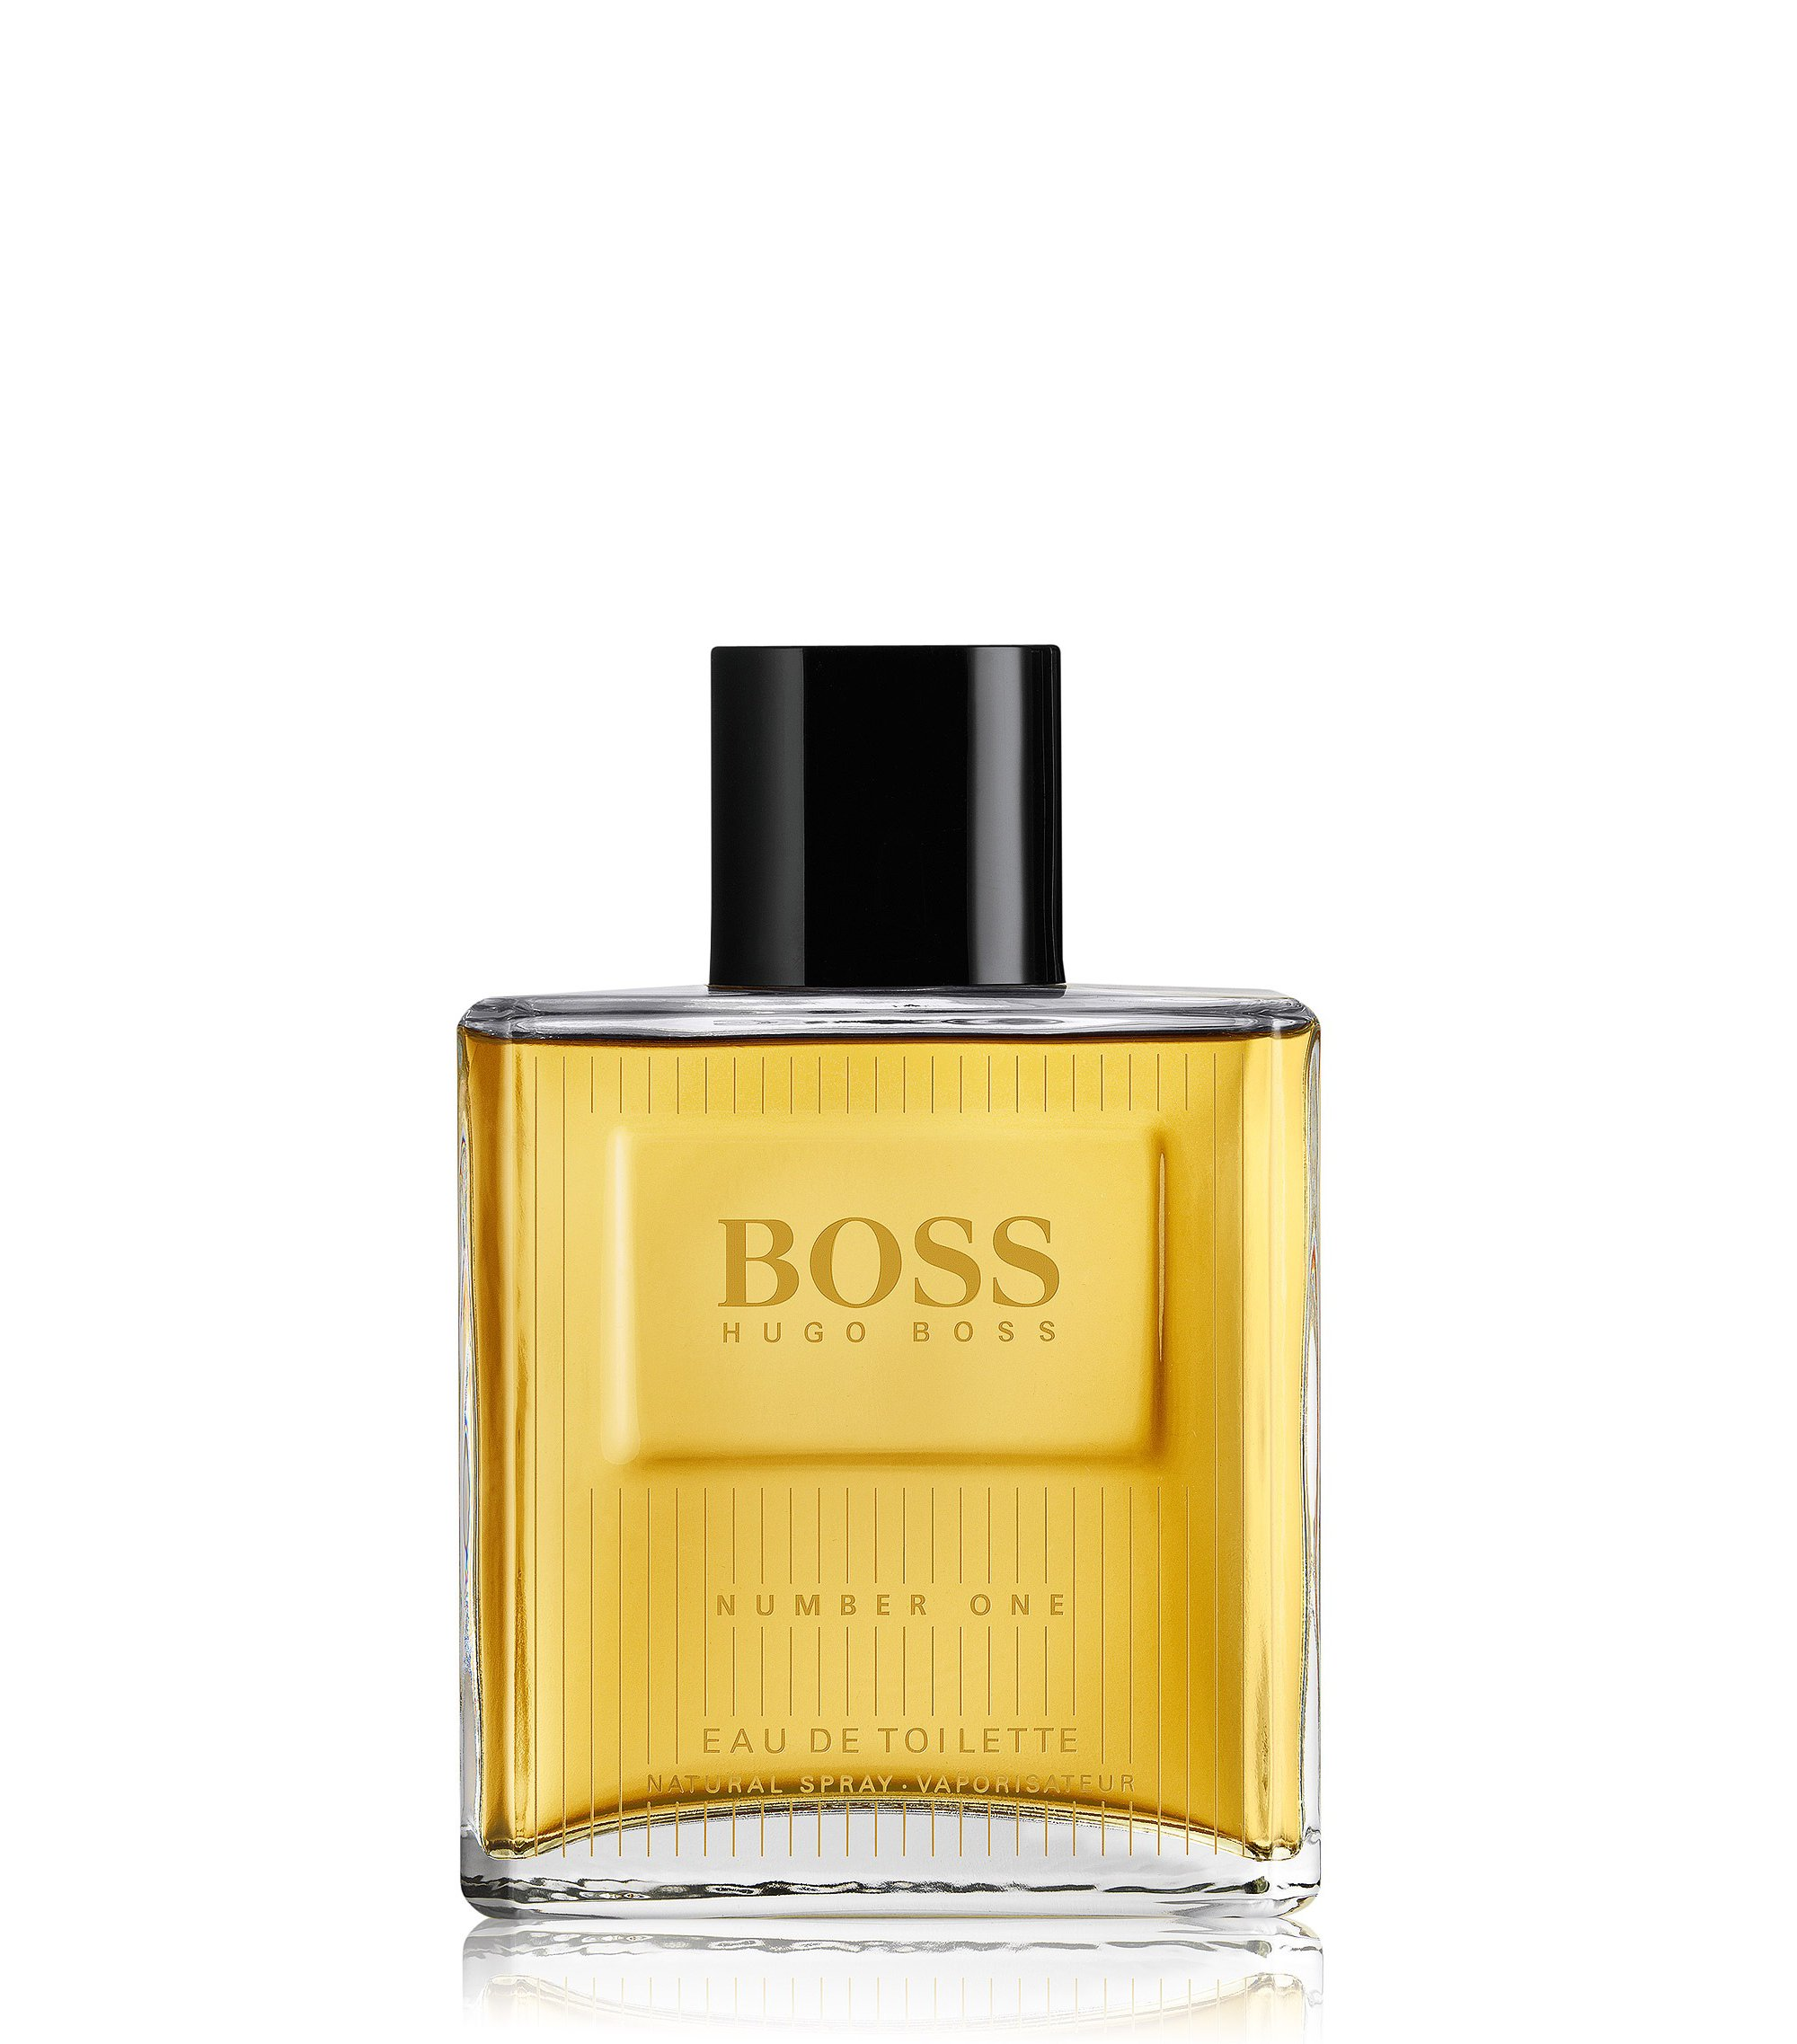 Eau de toilette BOSS Number One de 125 ml, Assorted-Pre-Pack